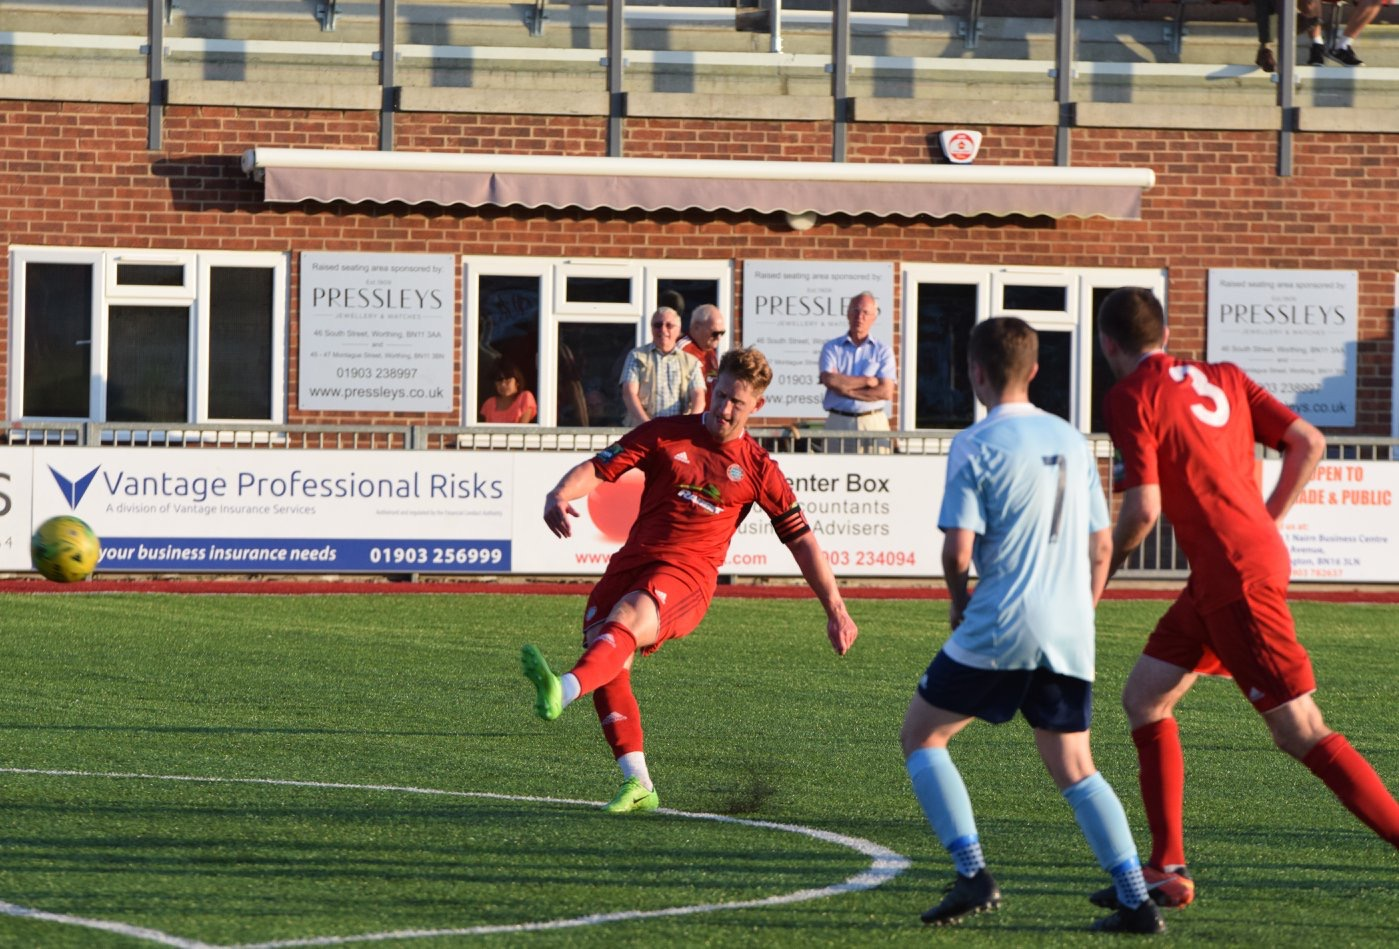 Gallery: Worthing United | Friendly